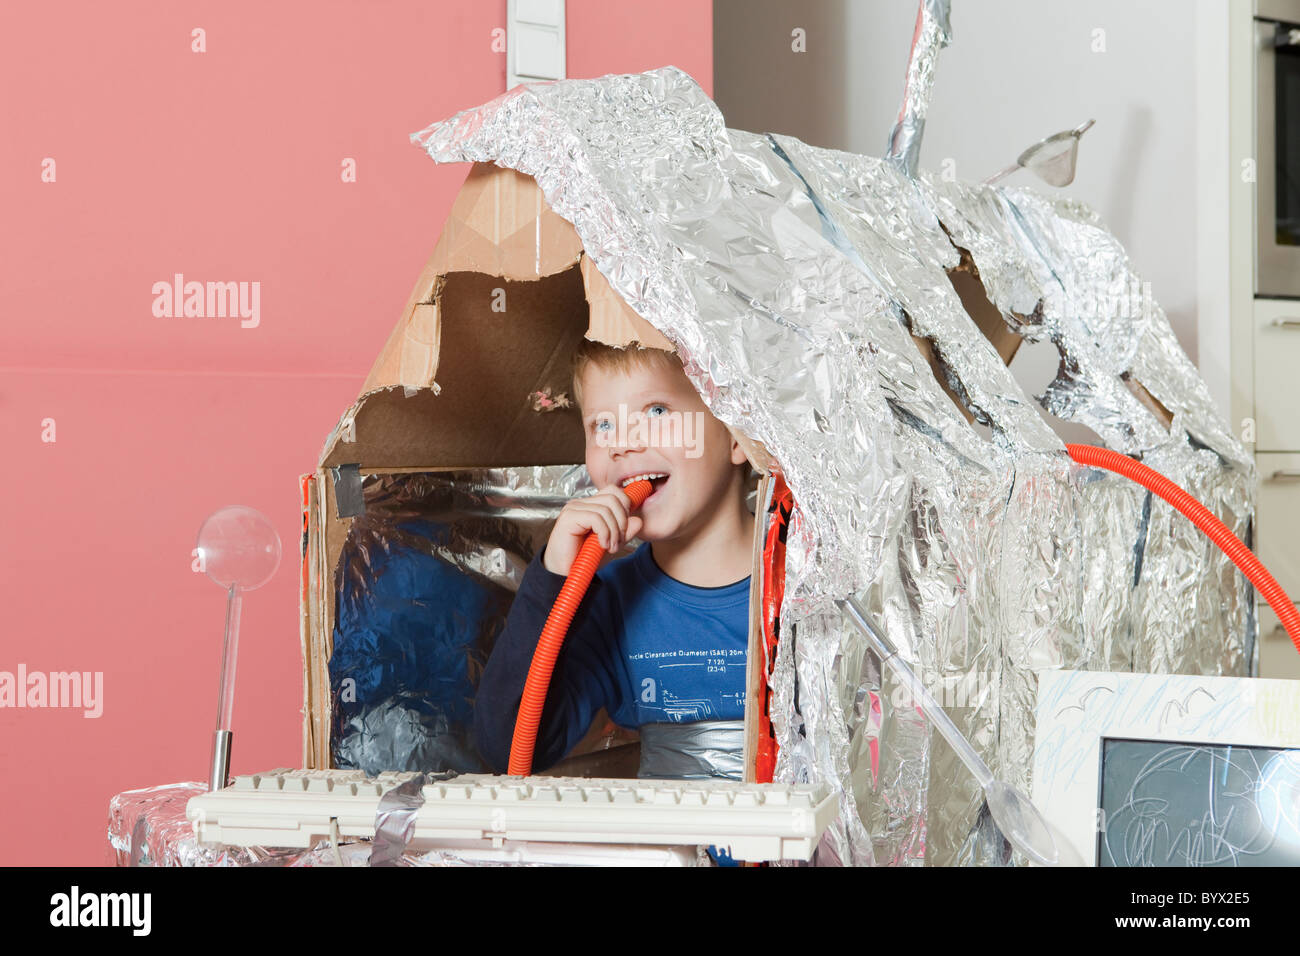 Boy in self constructed house, smiling - Stock Image